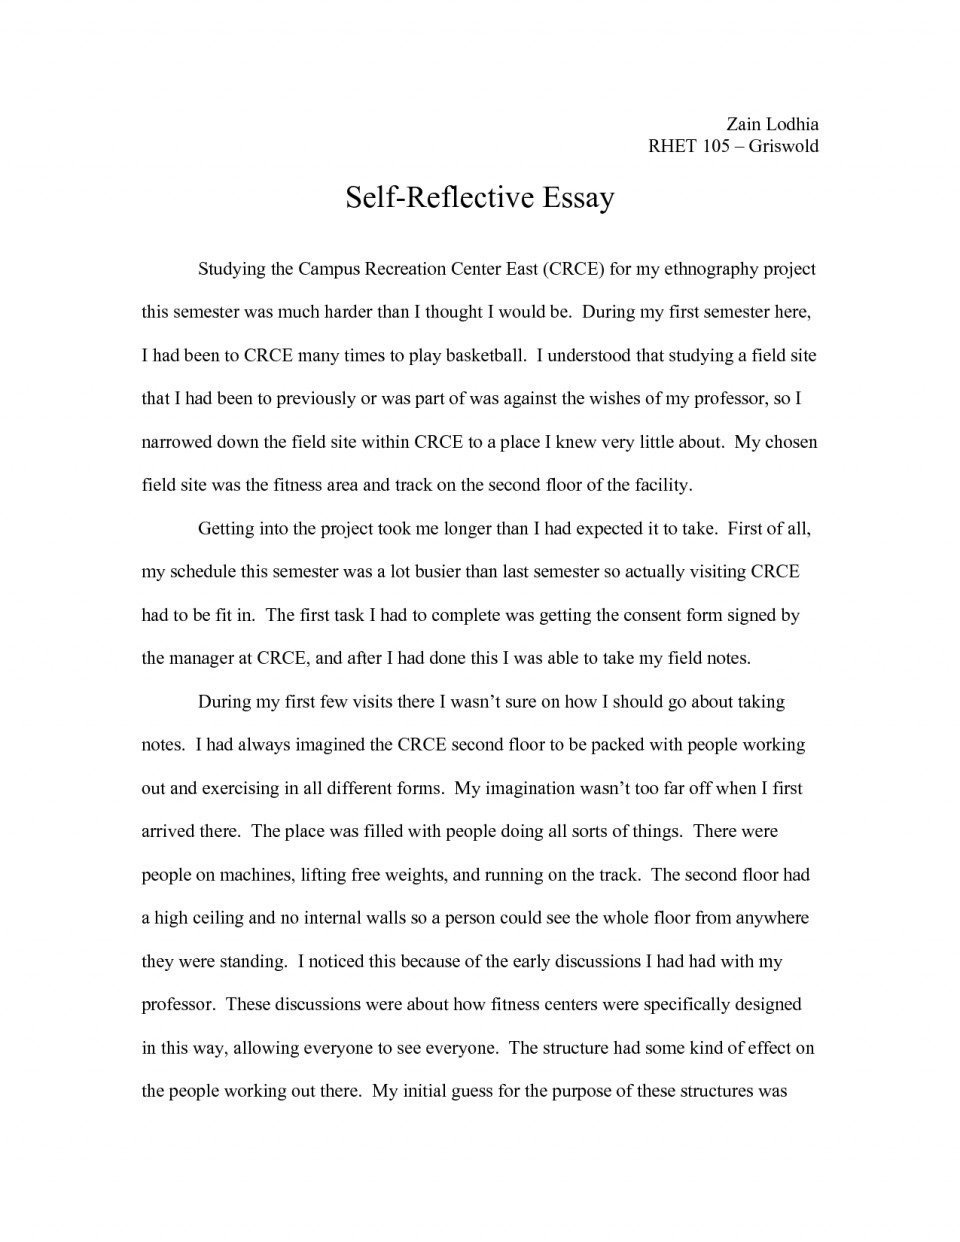 003 Qal0pwnf46 Reflective Essays Beautiful Essay Examples Sample Pdf About Writing English 101 960